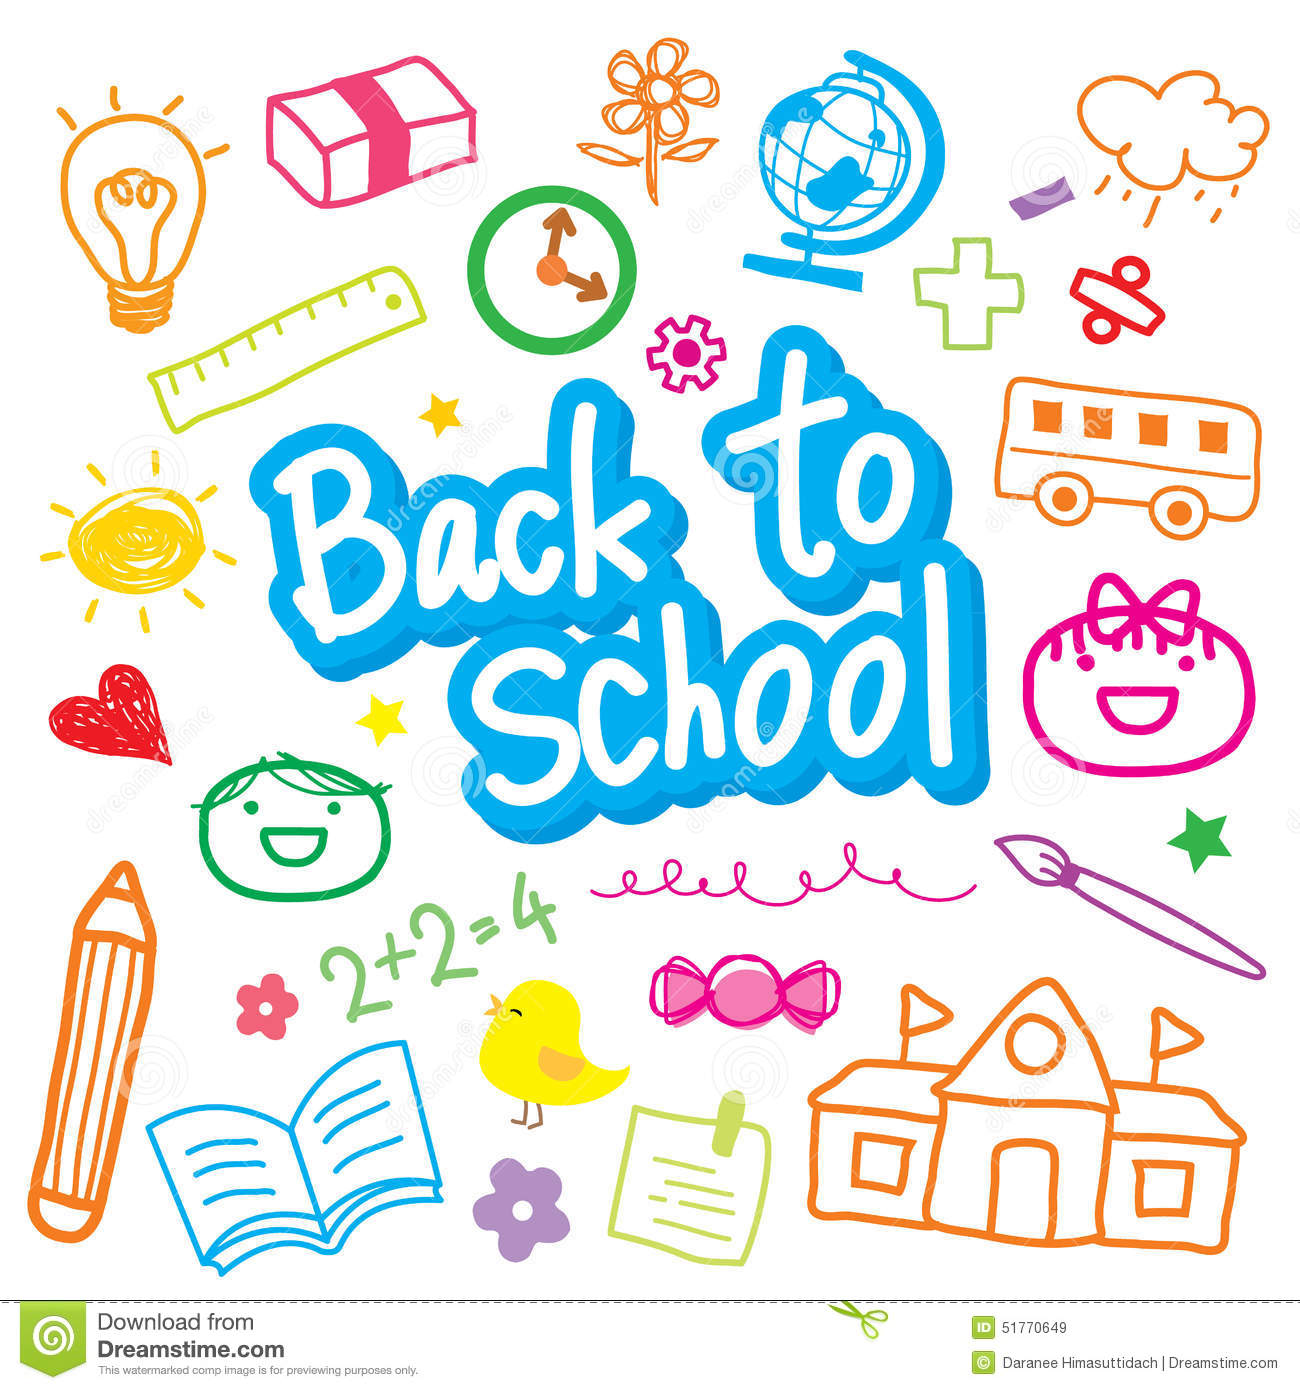 Back To School Draw Kid Cute Cartoon Vector Design Stock Vector ...